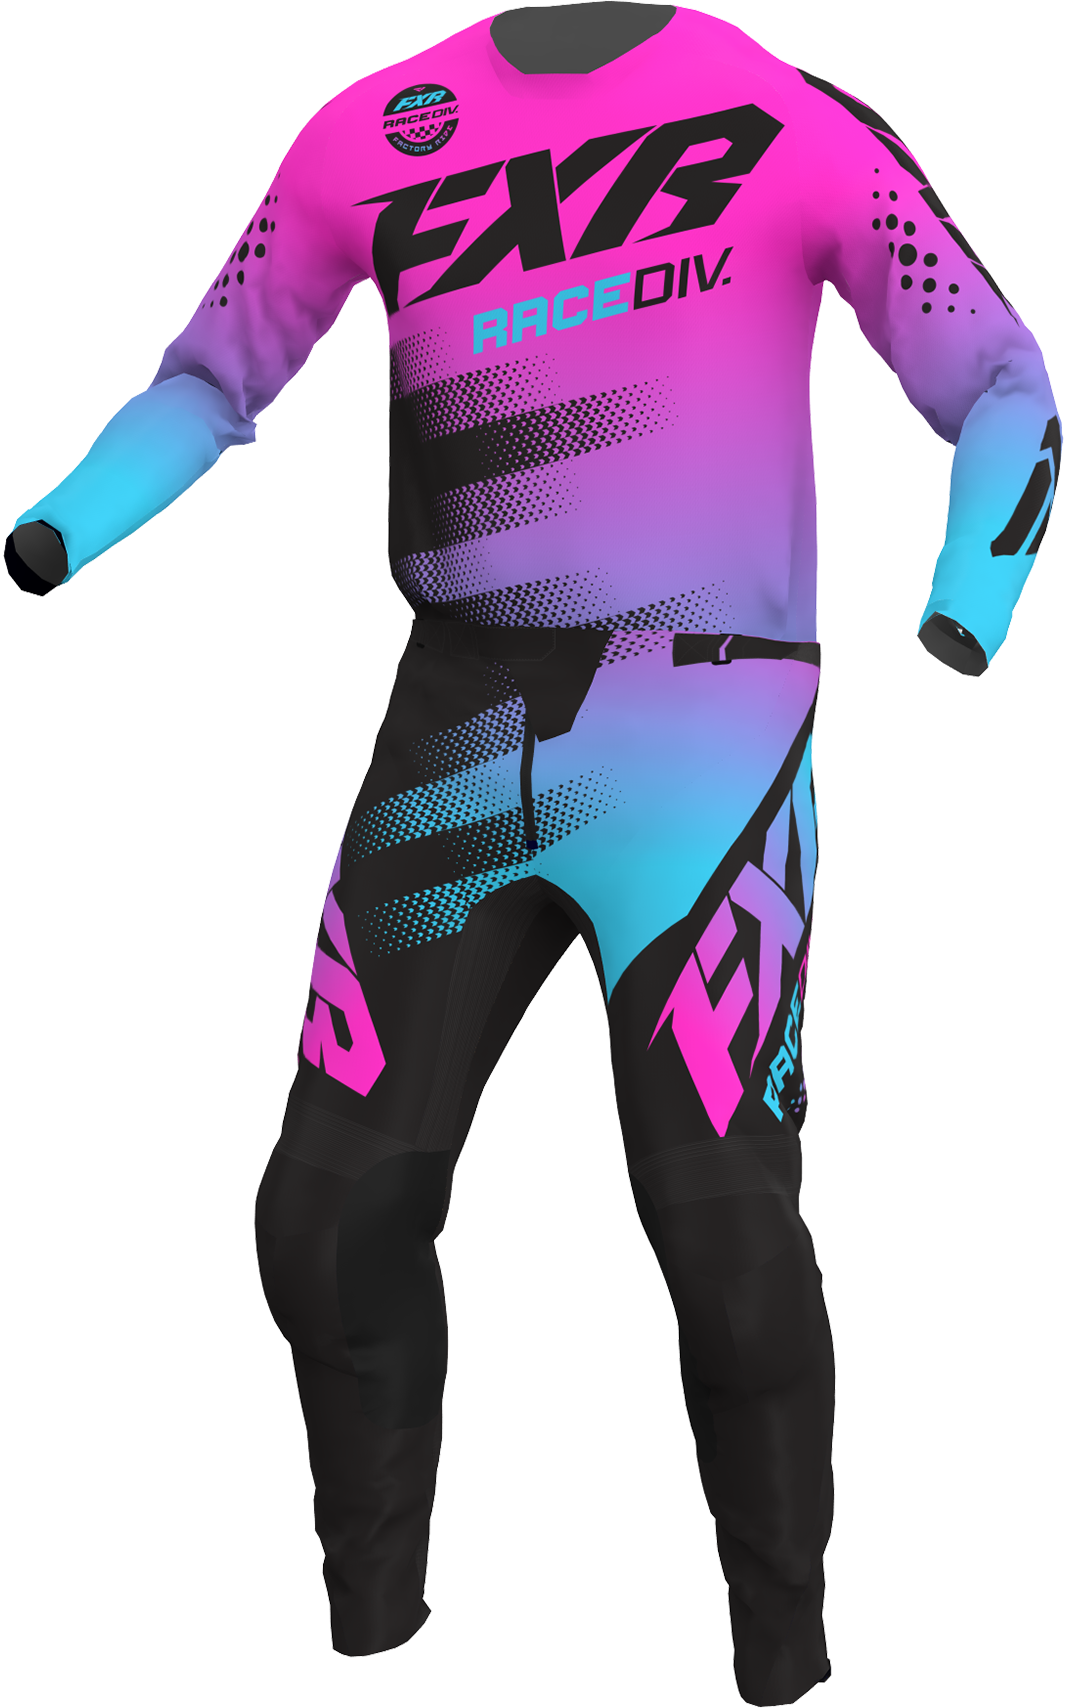 A 3D image of FXR's Clutch MX Jersey and Pant 22 in E-Pink / Sky Blue / Black colorway